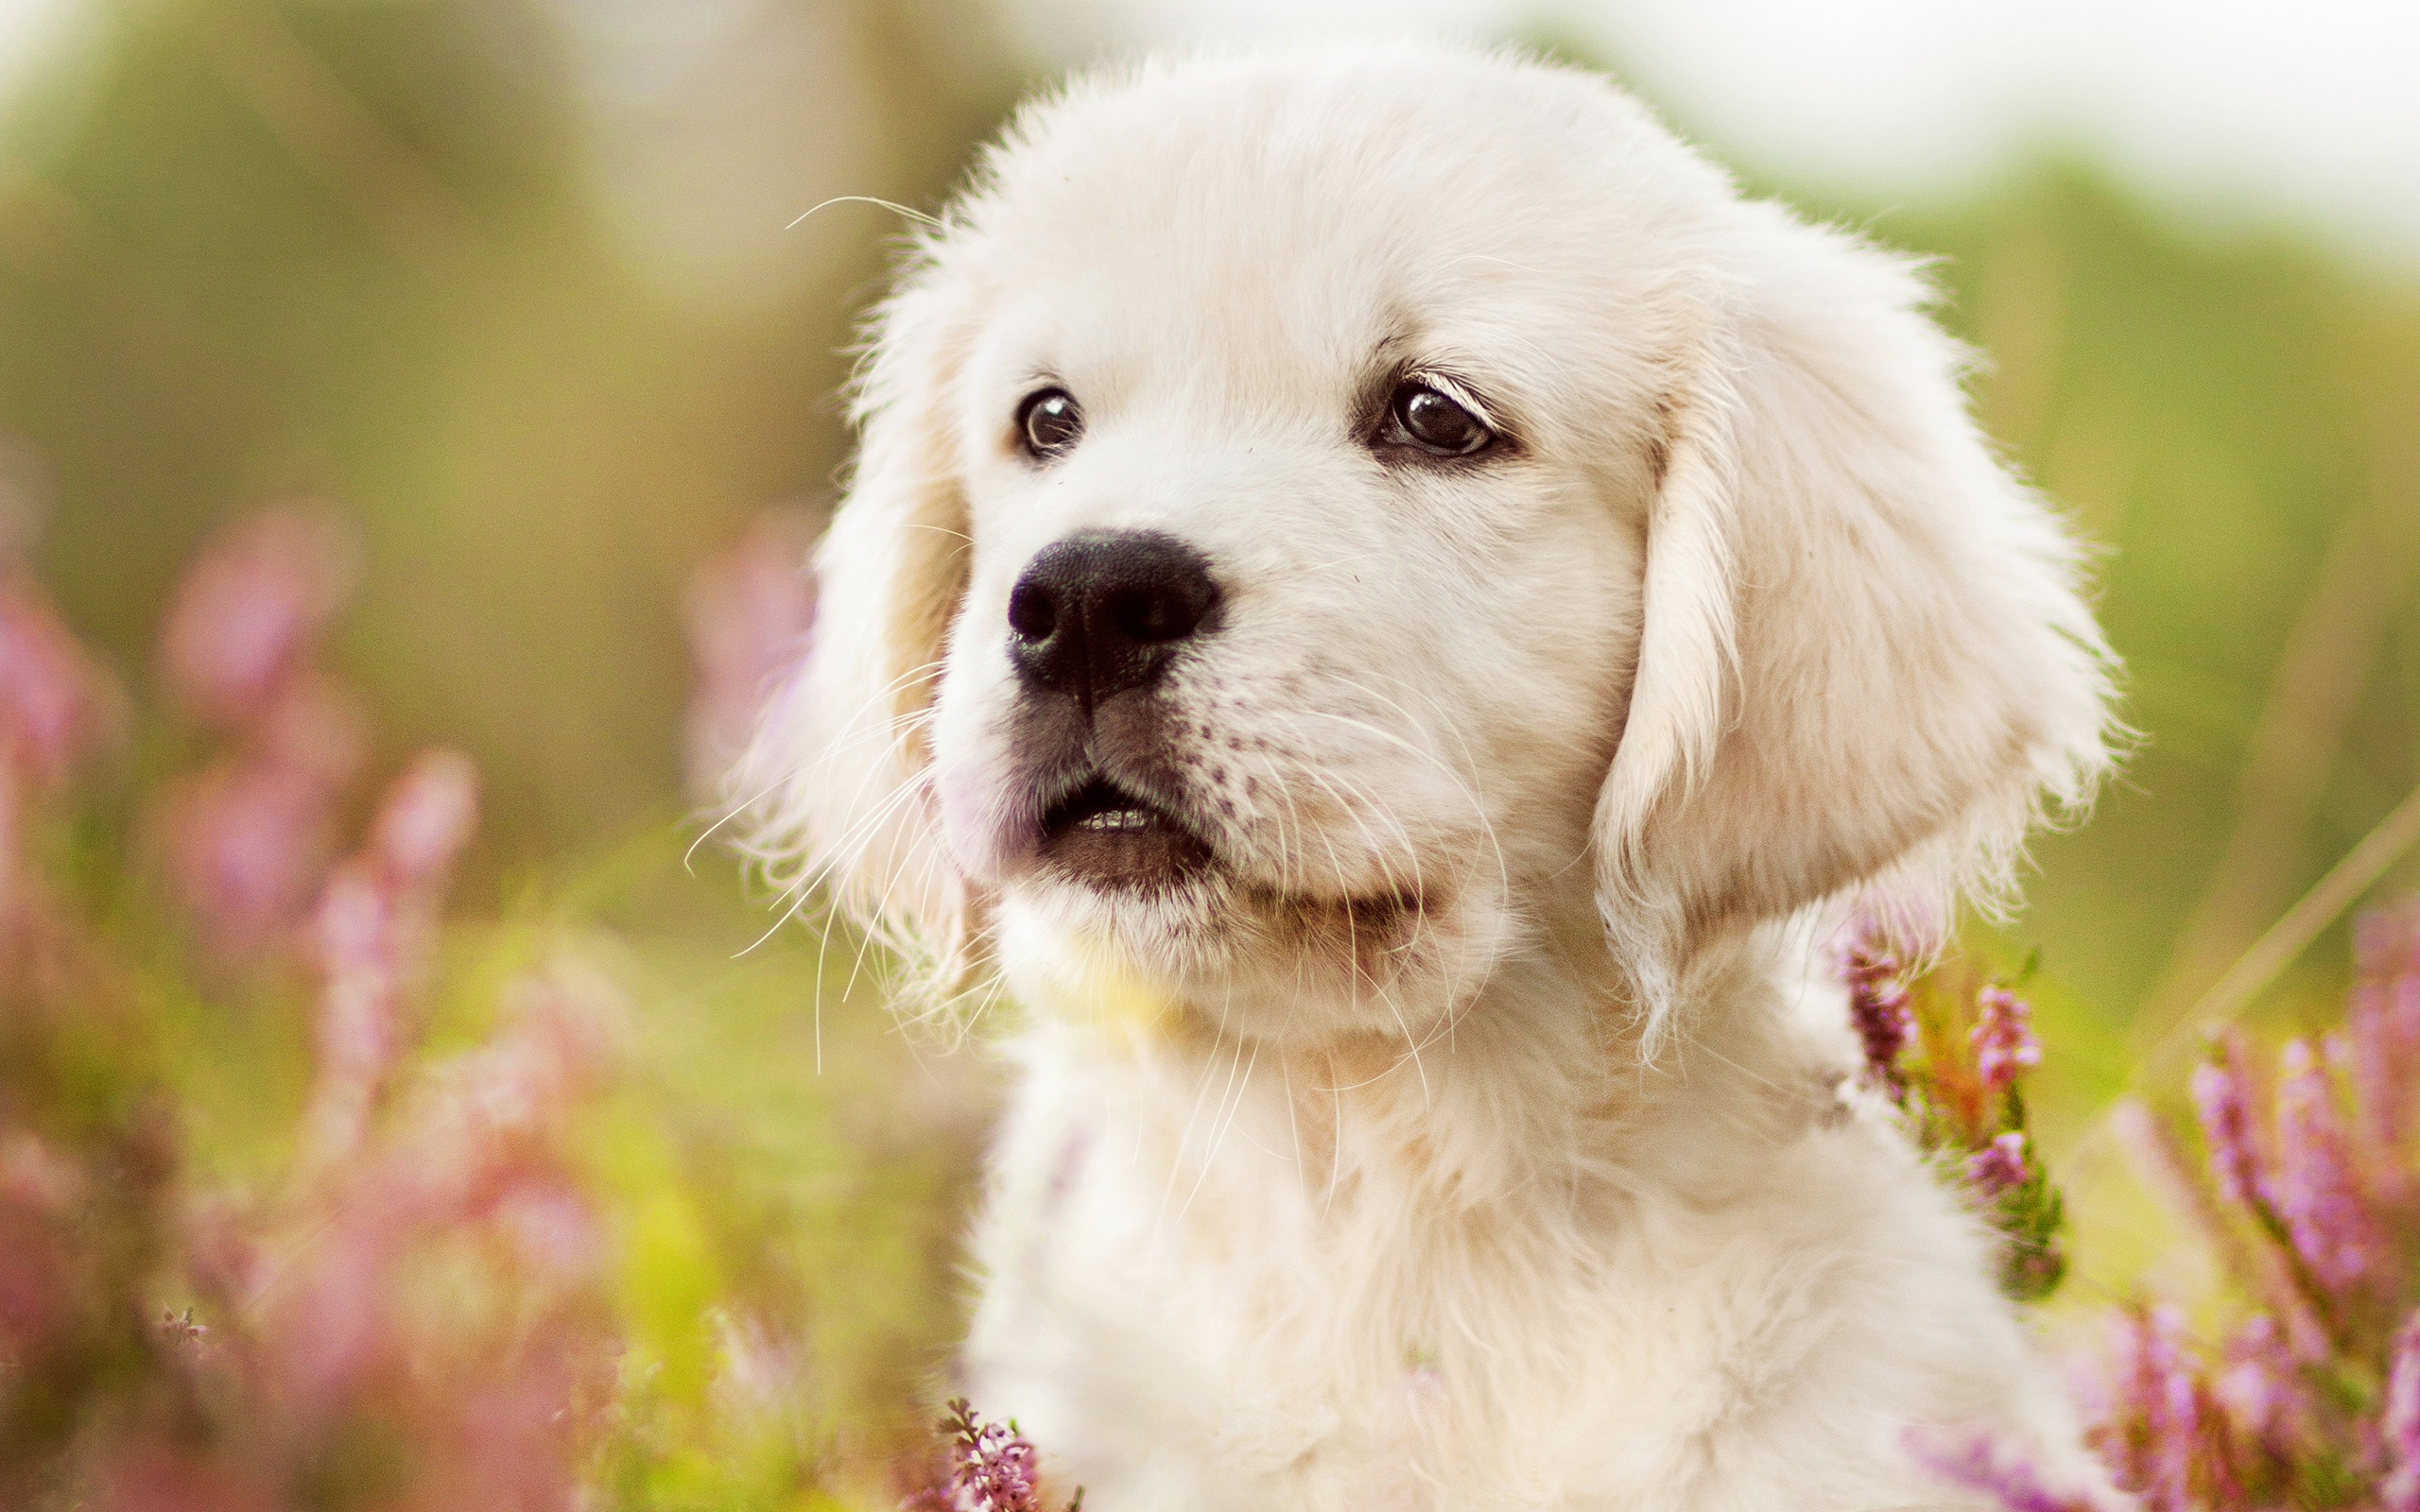 Wallpaper of Baby Animal Dog Golden Retriever Pet Puppy 2560x1600